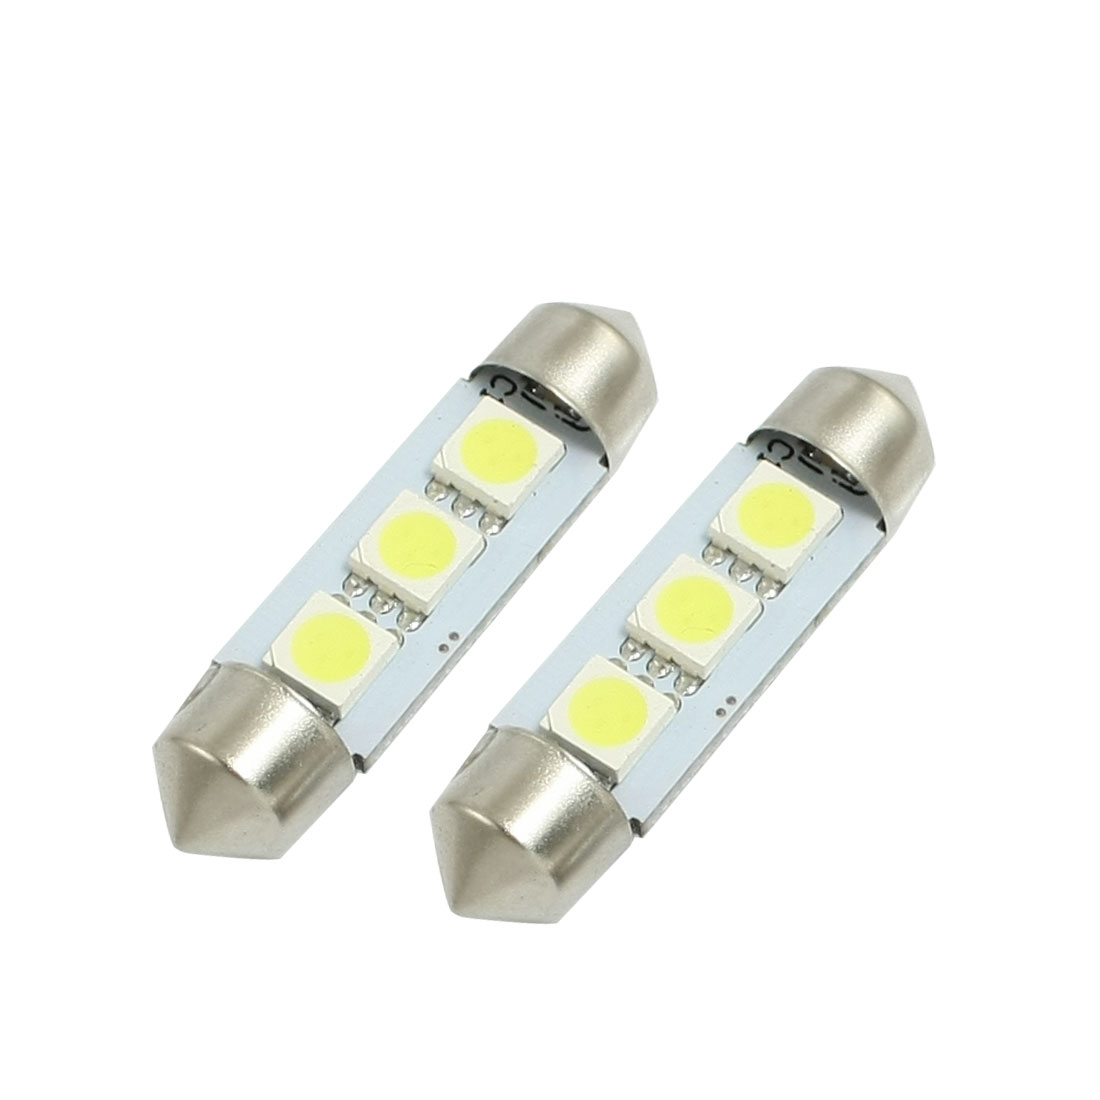 2 Pcs 3 White LED Canbus 5050 SMD 39mm Car Replacement Plate Lights Bulbs